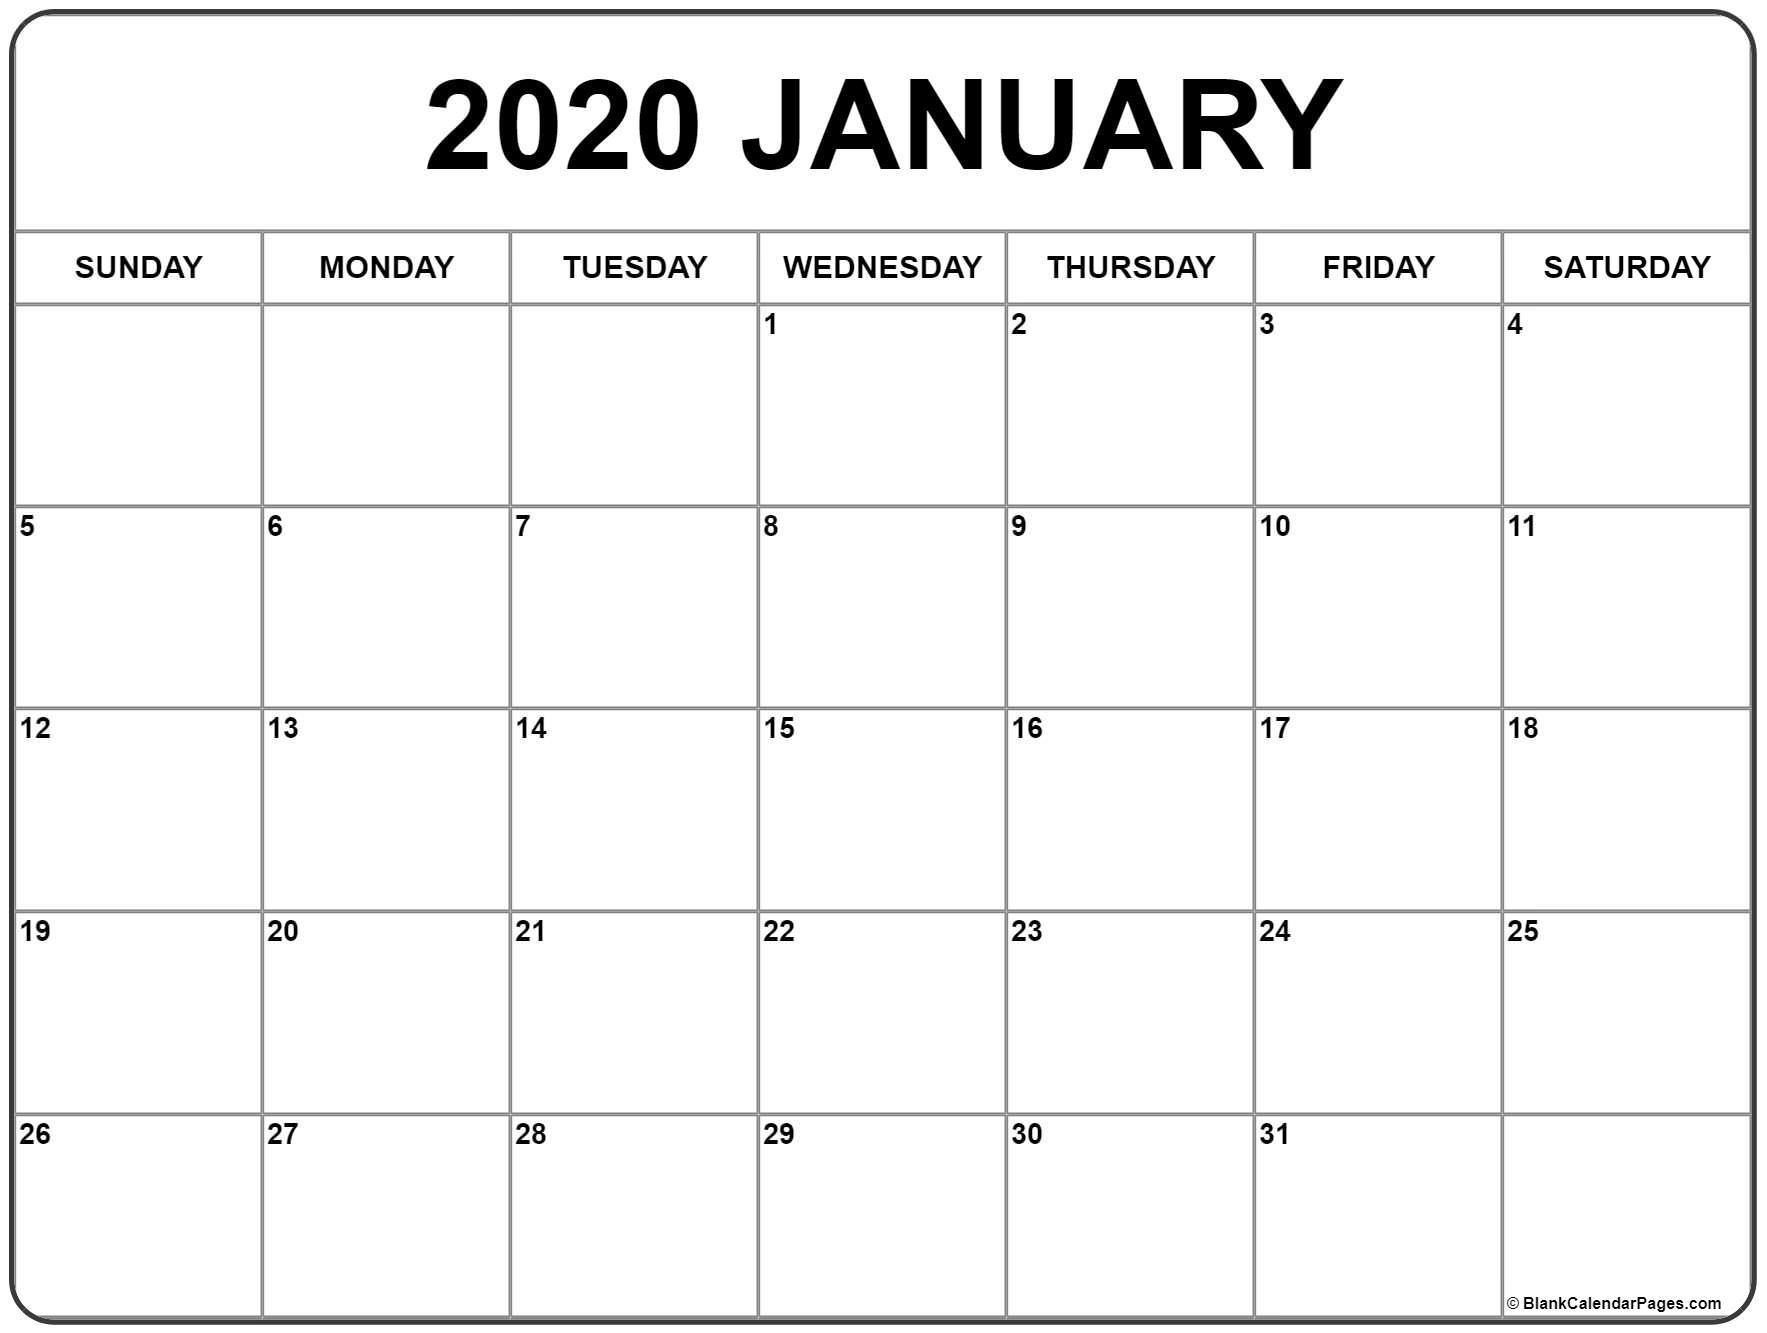 Wonderful Absolutely Free January Calendar 2020 Tips The